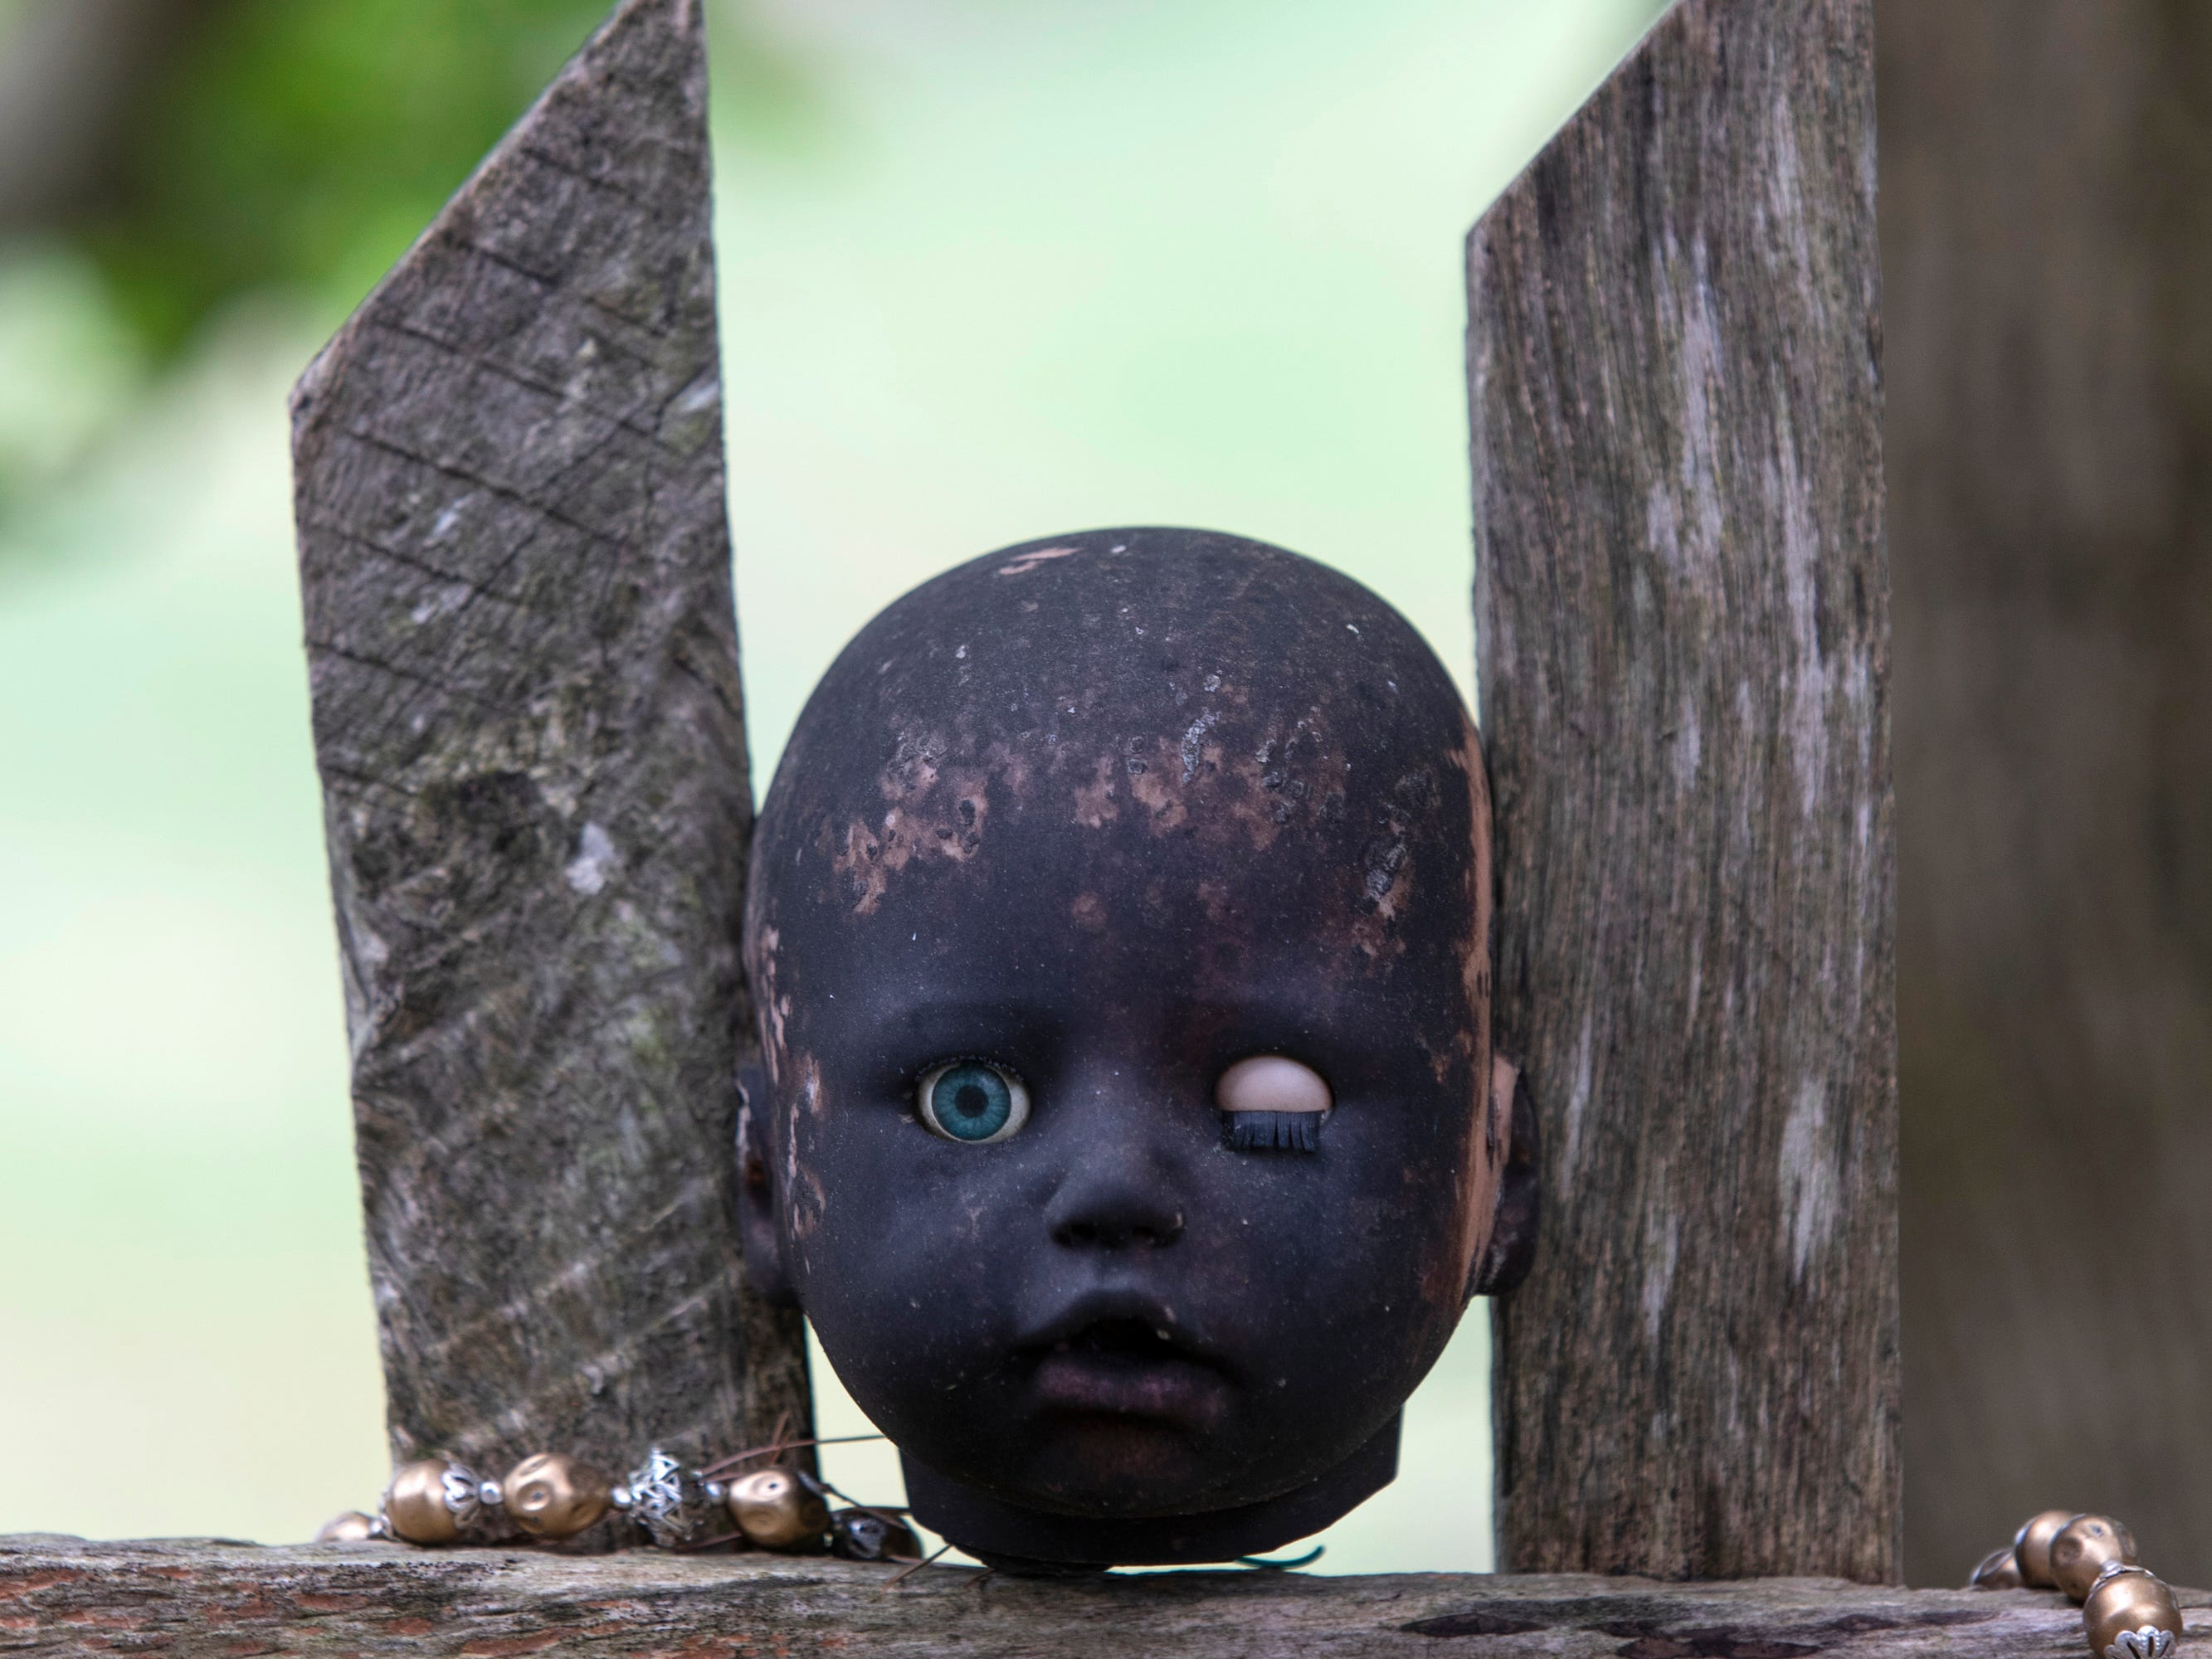 The head of baby doll resides between two pickets of a fence at the Home for Wayward Babydolls. April 19, 2019